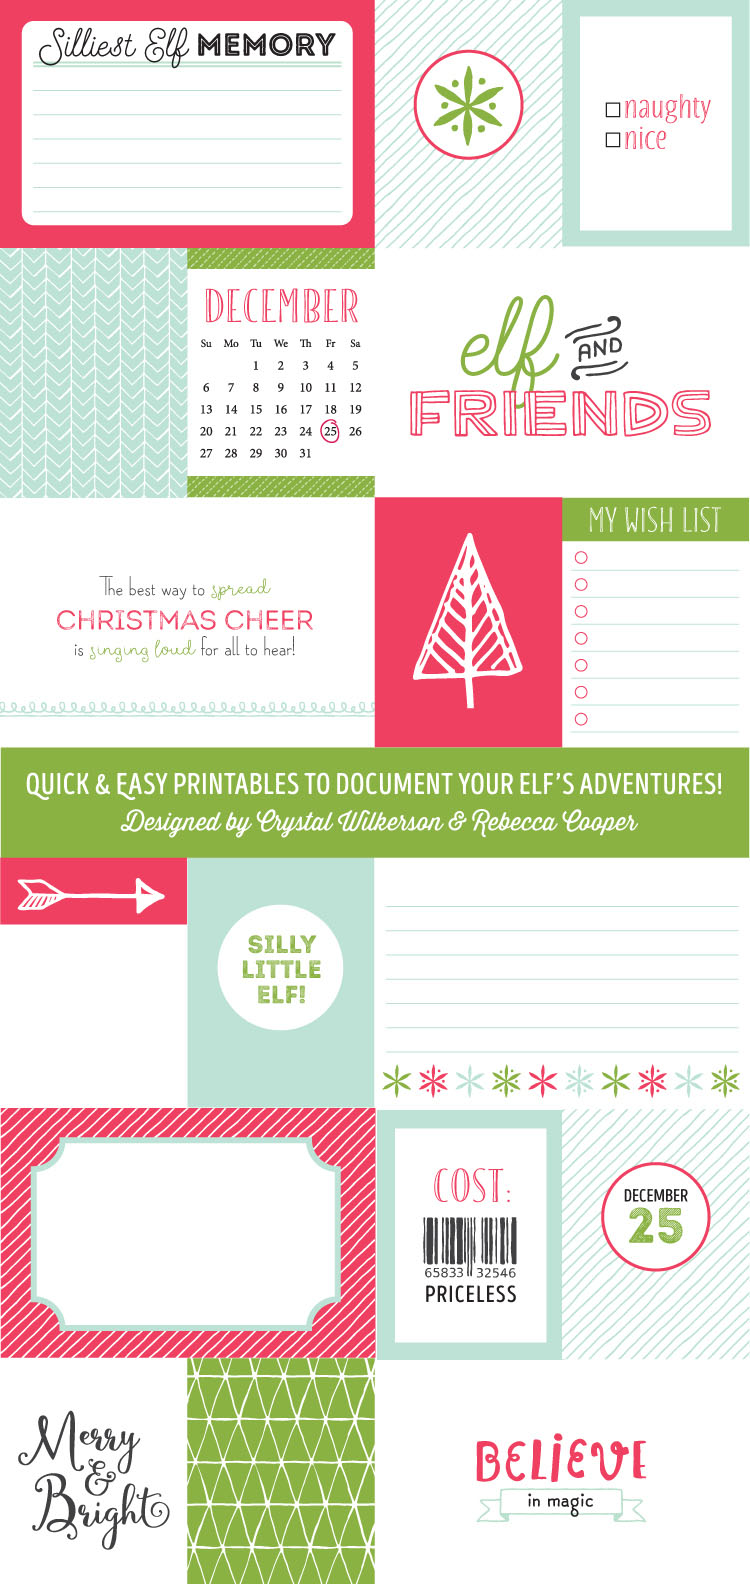 Printable Elf on the Shelf journaling and filler cards to document your Elf's adventures. Print and use in your memory albums, as Elf notes or gift tags this Holiday season.